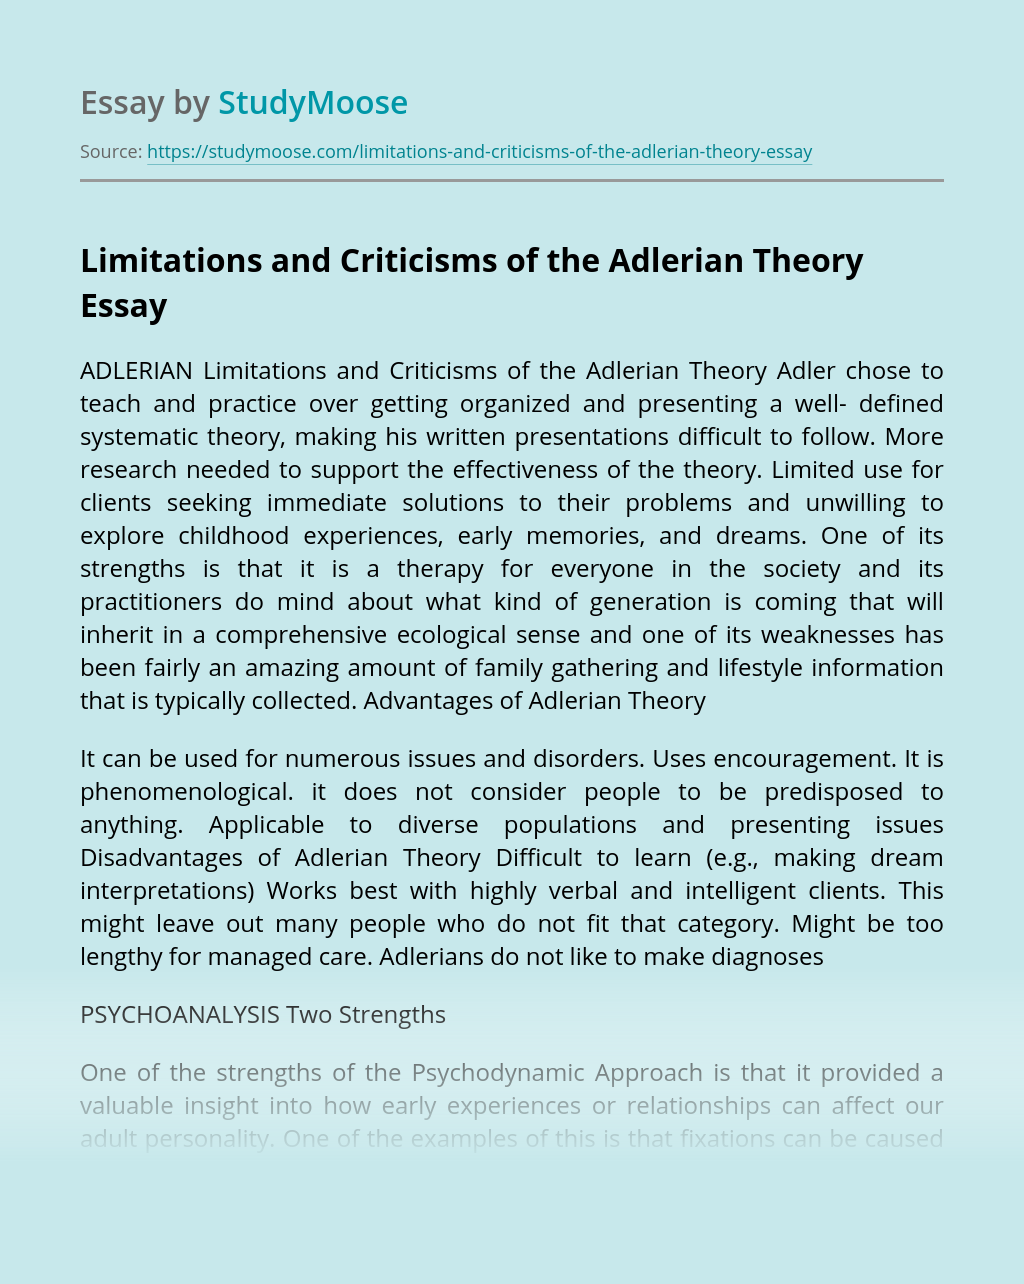 Limitations and Criticisms of the Adlerian Theory